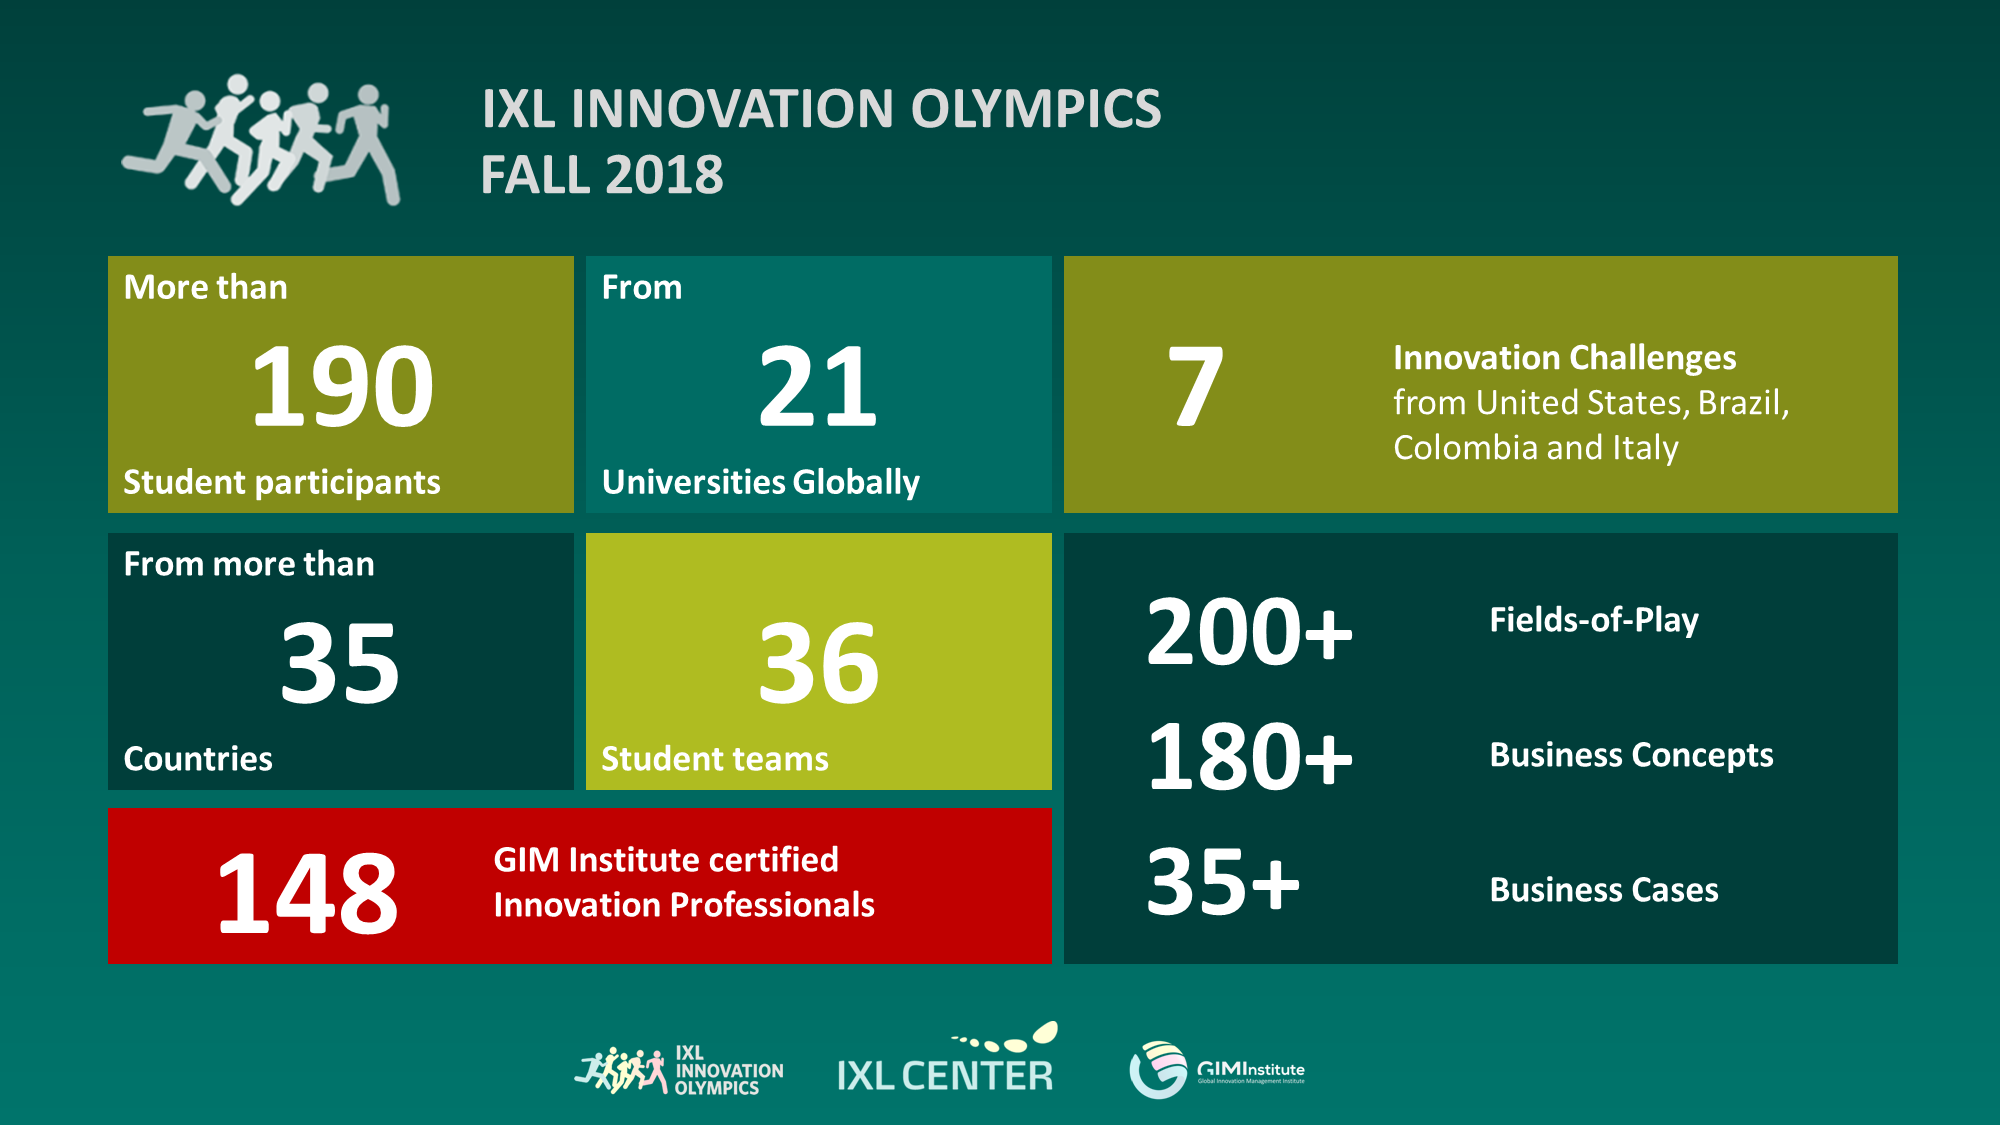 FALL 2018 IXL Innovation Olympics